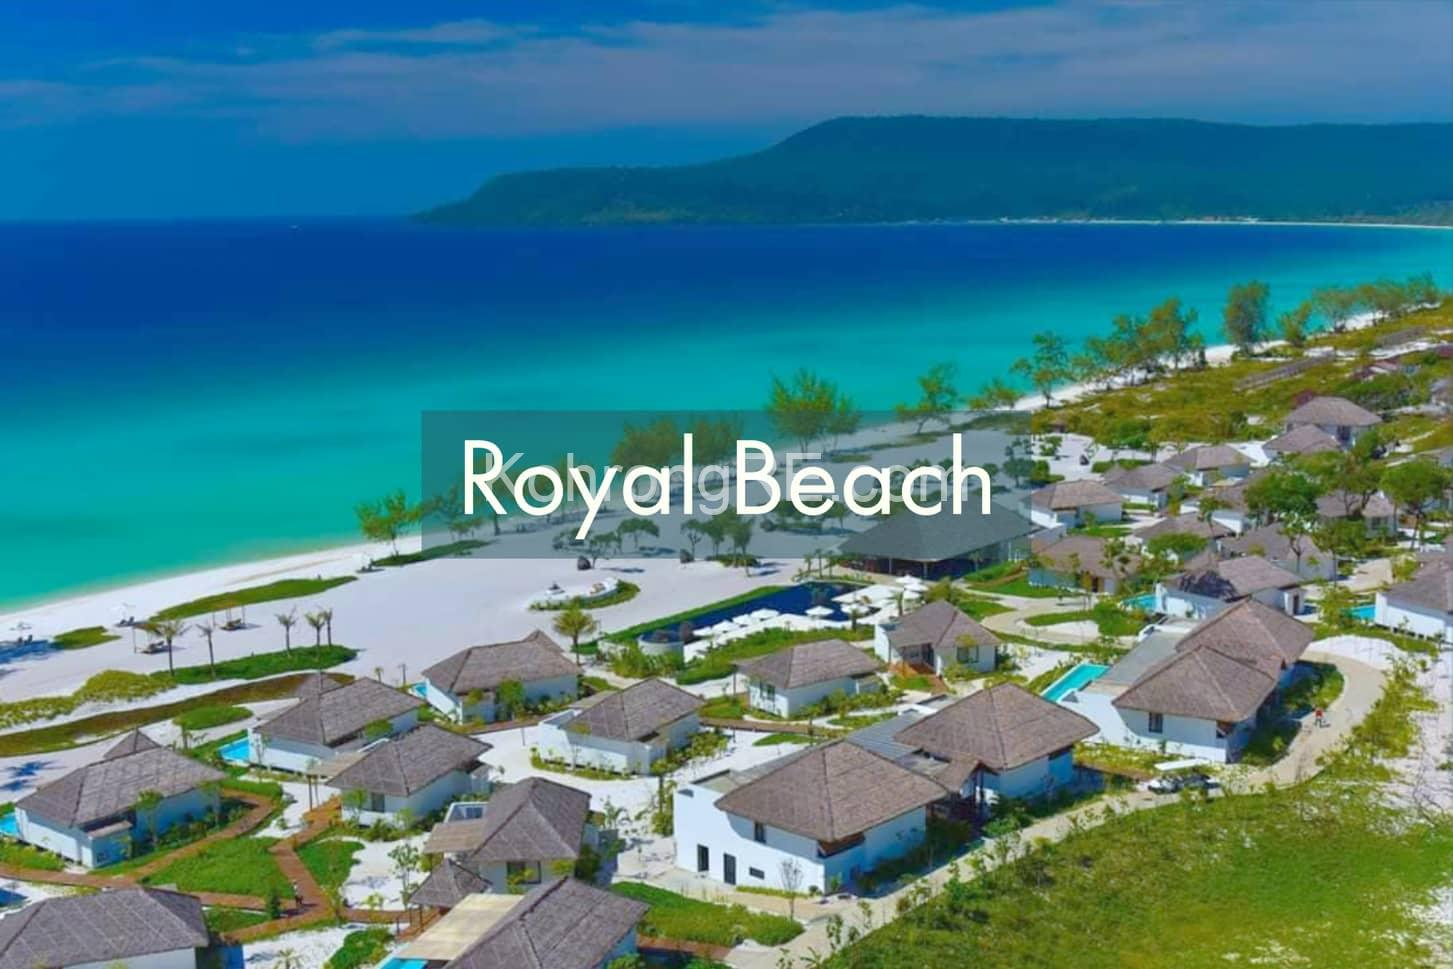 Royal Beach Koh Rong development casino airport Chinese investors Koh Rong island Cambodia a